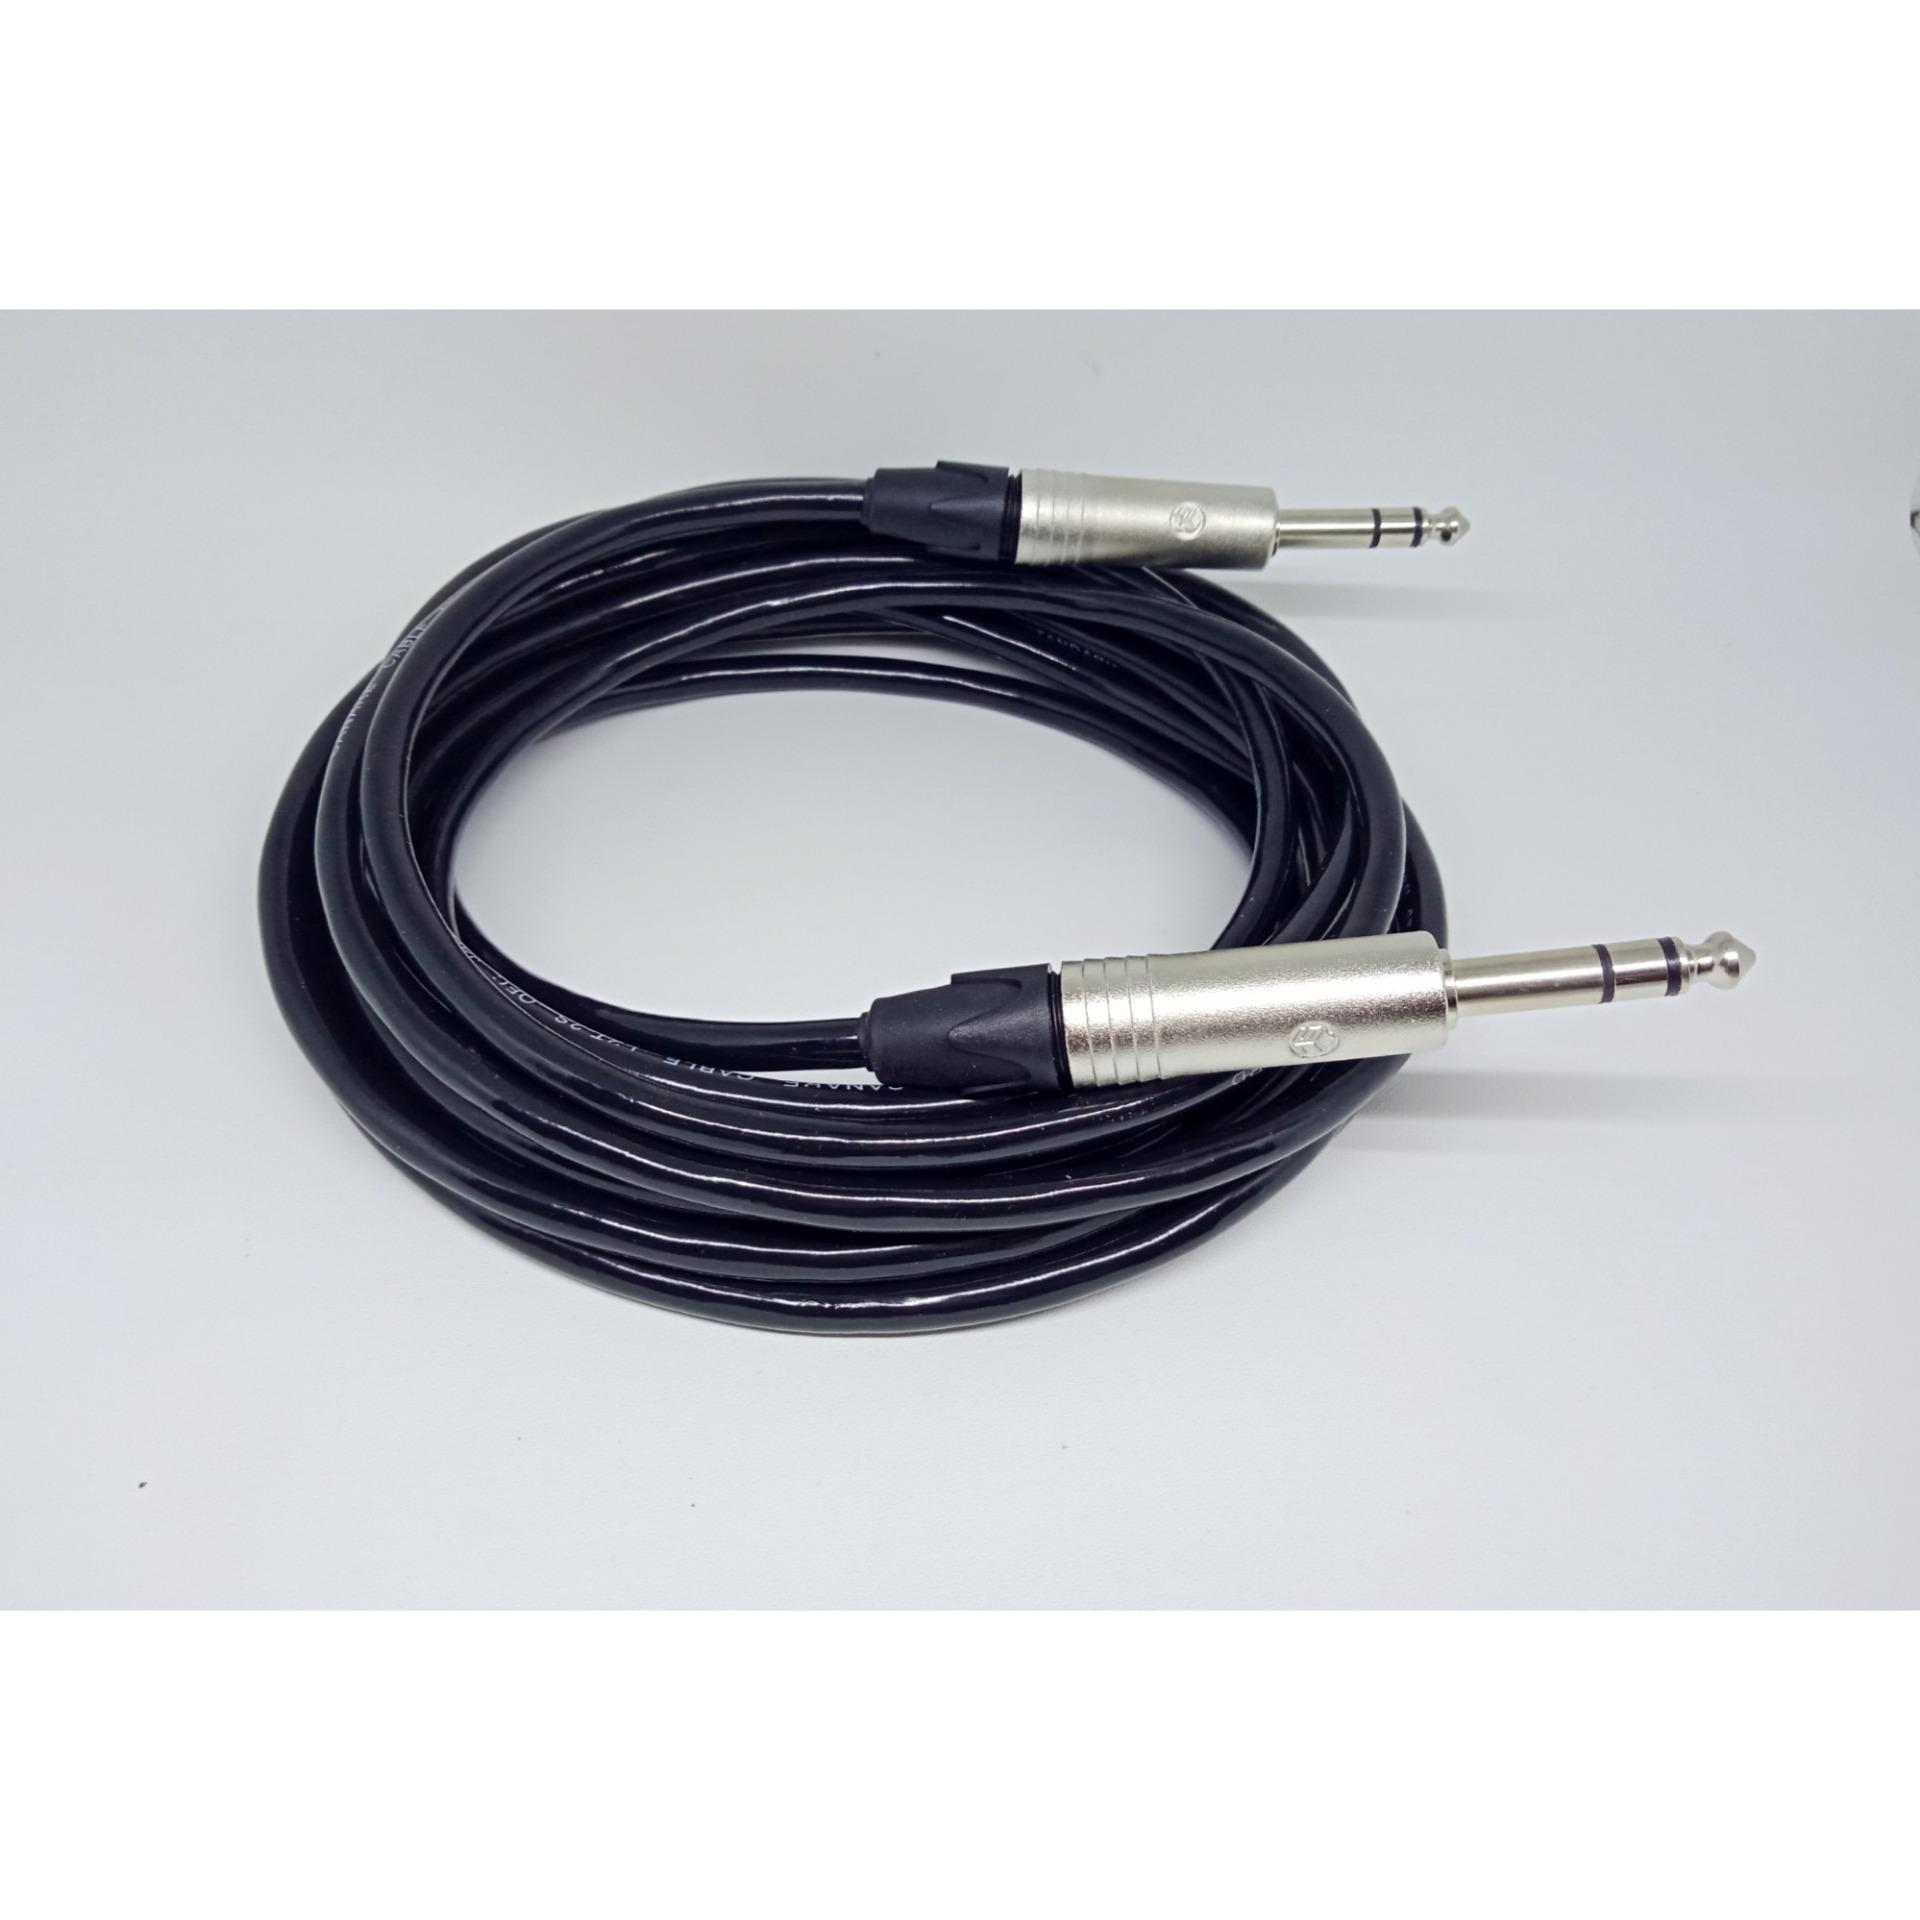 kabel Gitar 6,5mm to 6,5mm jack stereo canare 5m full High Quality